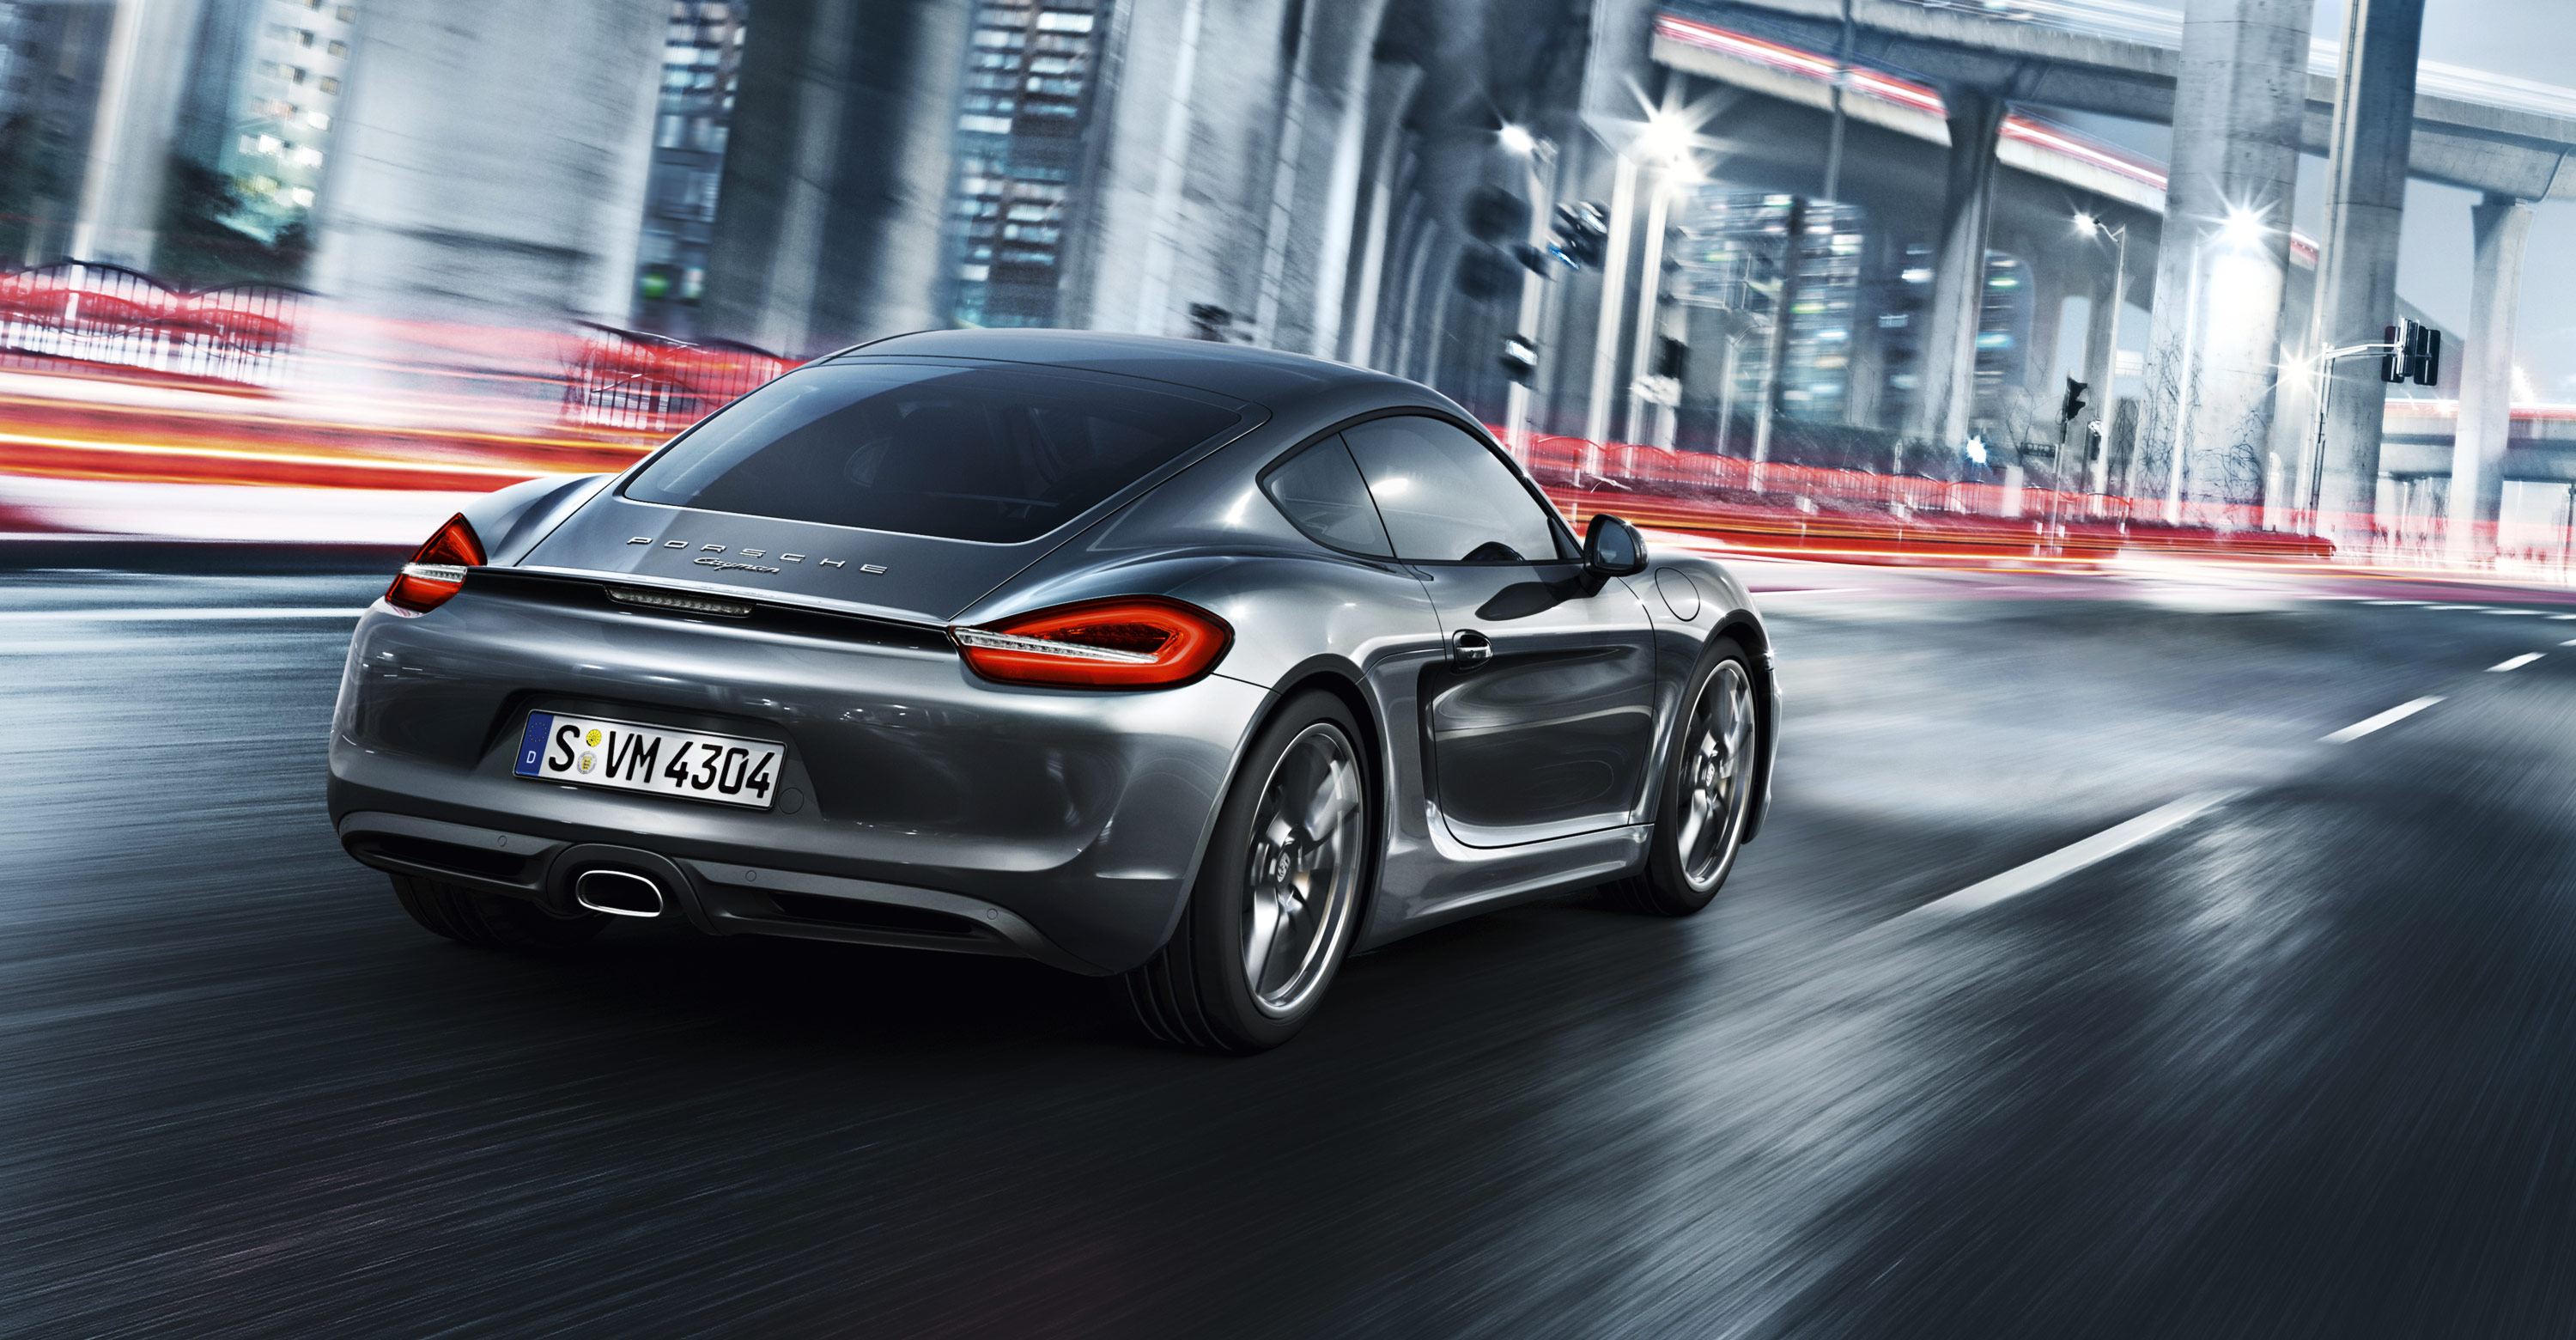 2013-porsche-cayman-wallpaper_07